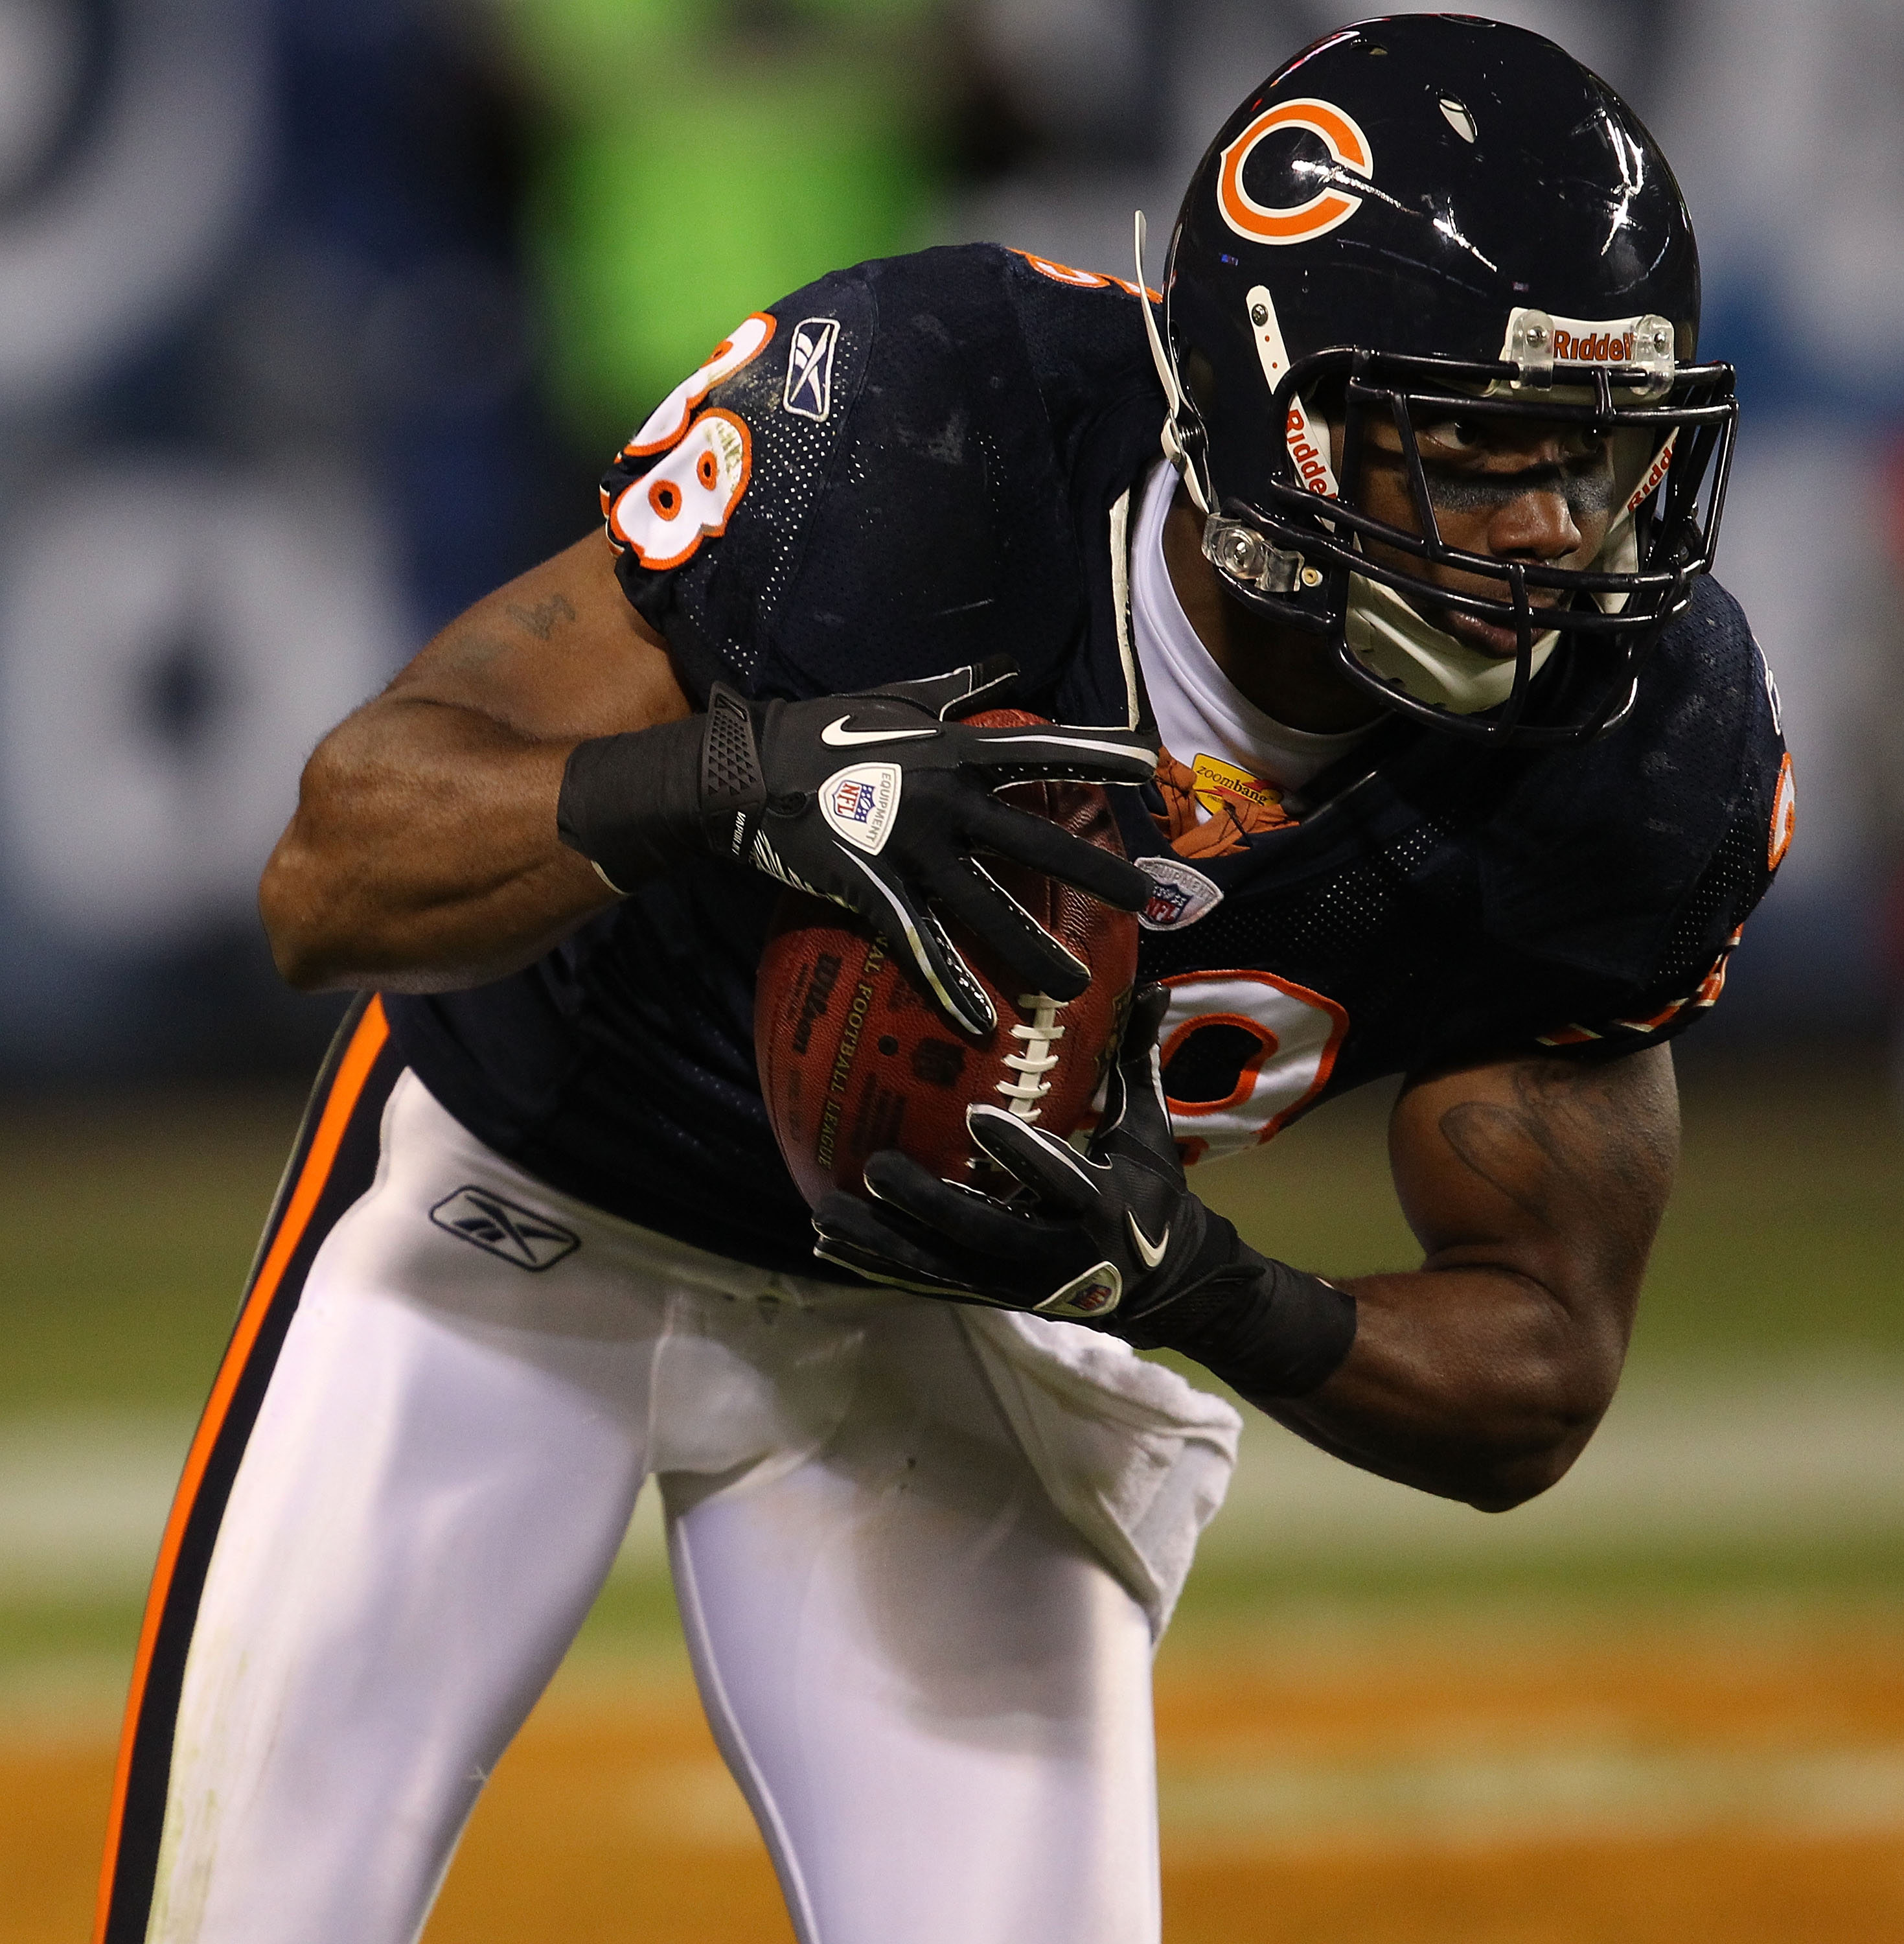 CHICAGO - NOVEMBER 28: Danieal Manning #38 of the Chicago Bears fields a kick against the Philadelphia Eagles at Soldier Field on November 28, 2010 in Chicago, Illinois. The Bears defeated the Eagles 31-26. (Photo by Jonathan Daniel/Getty Images)